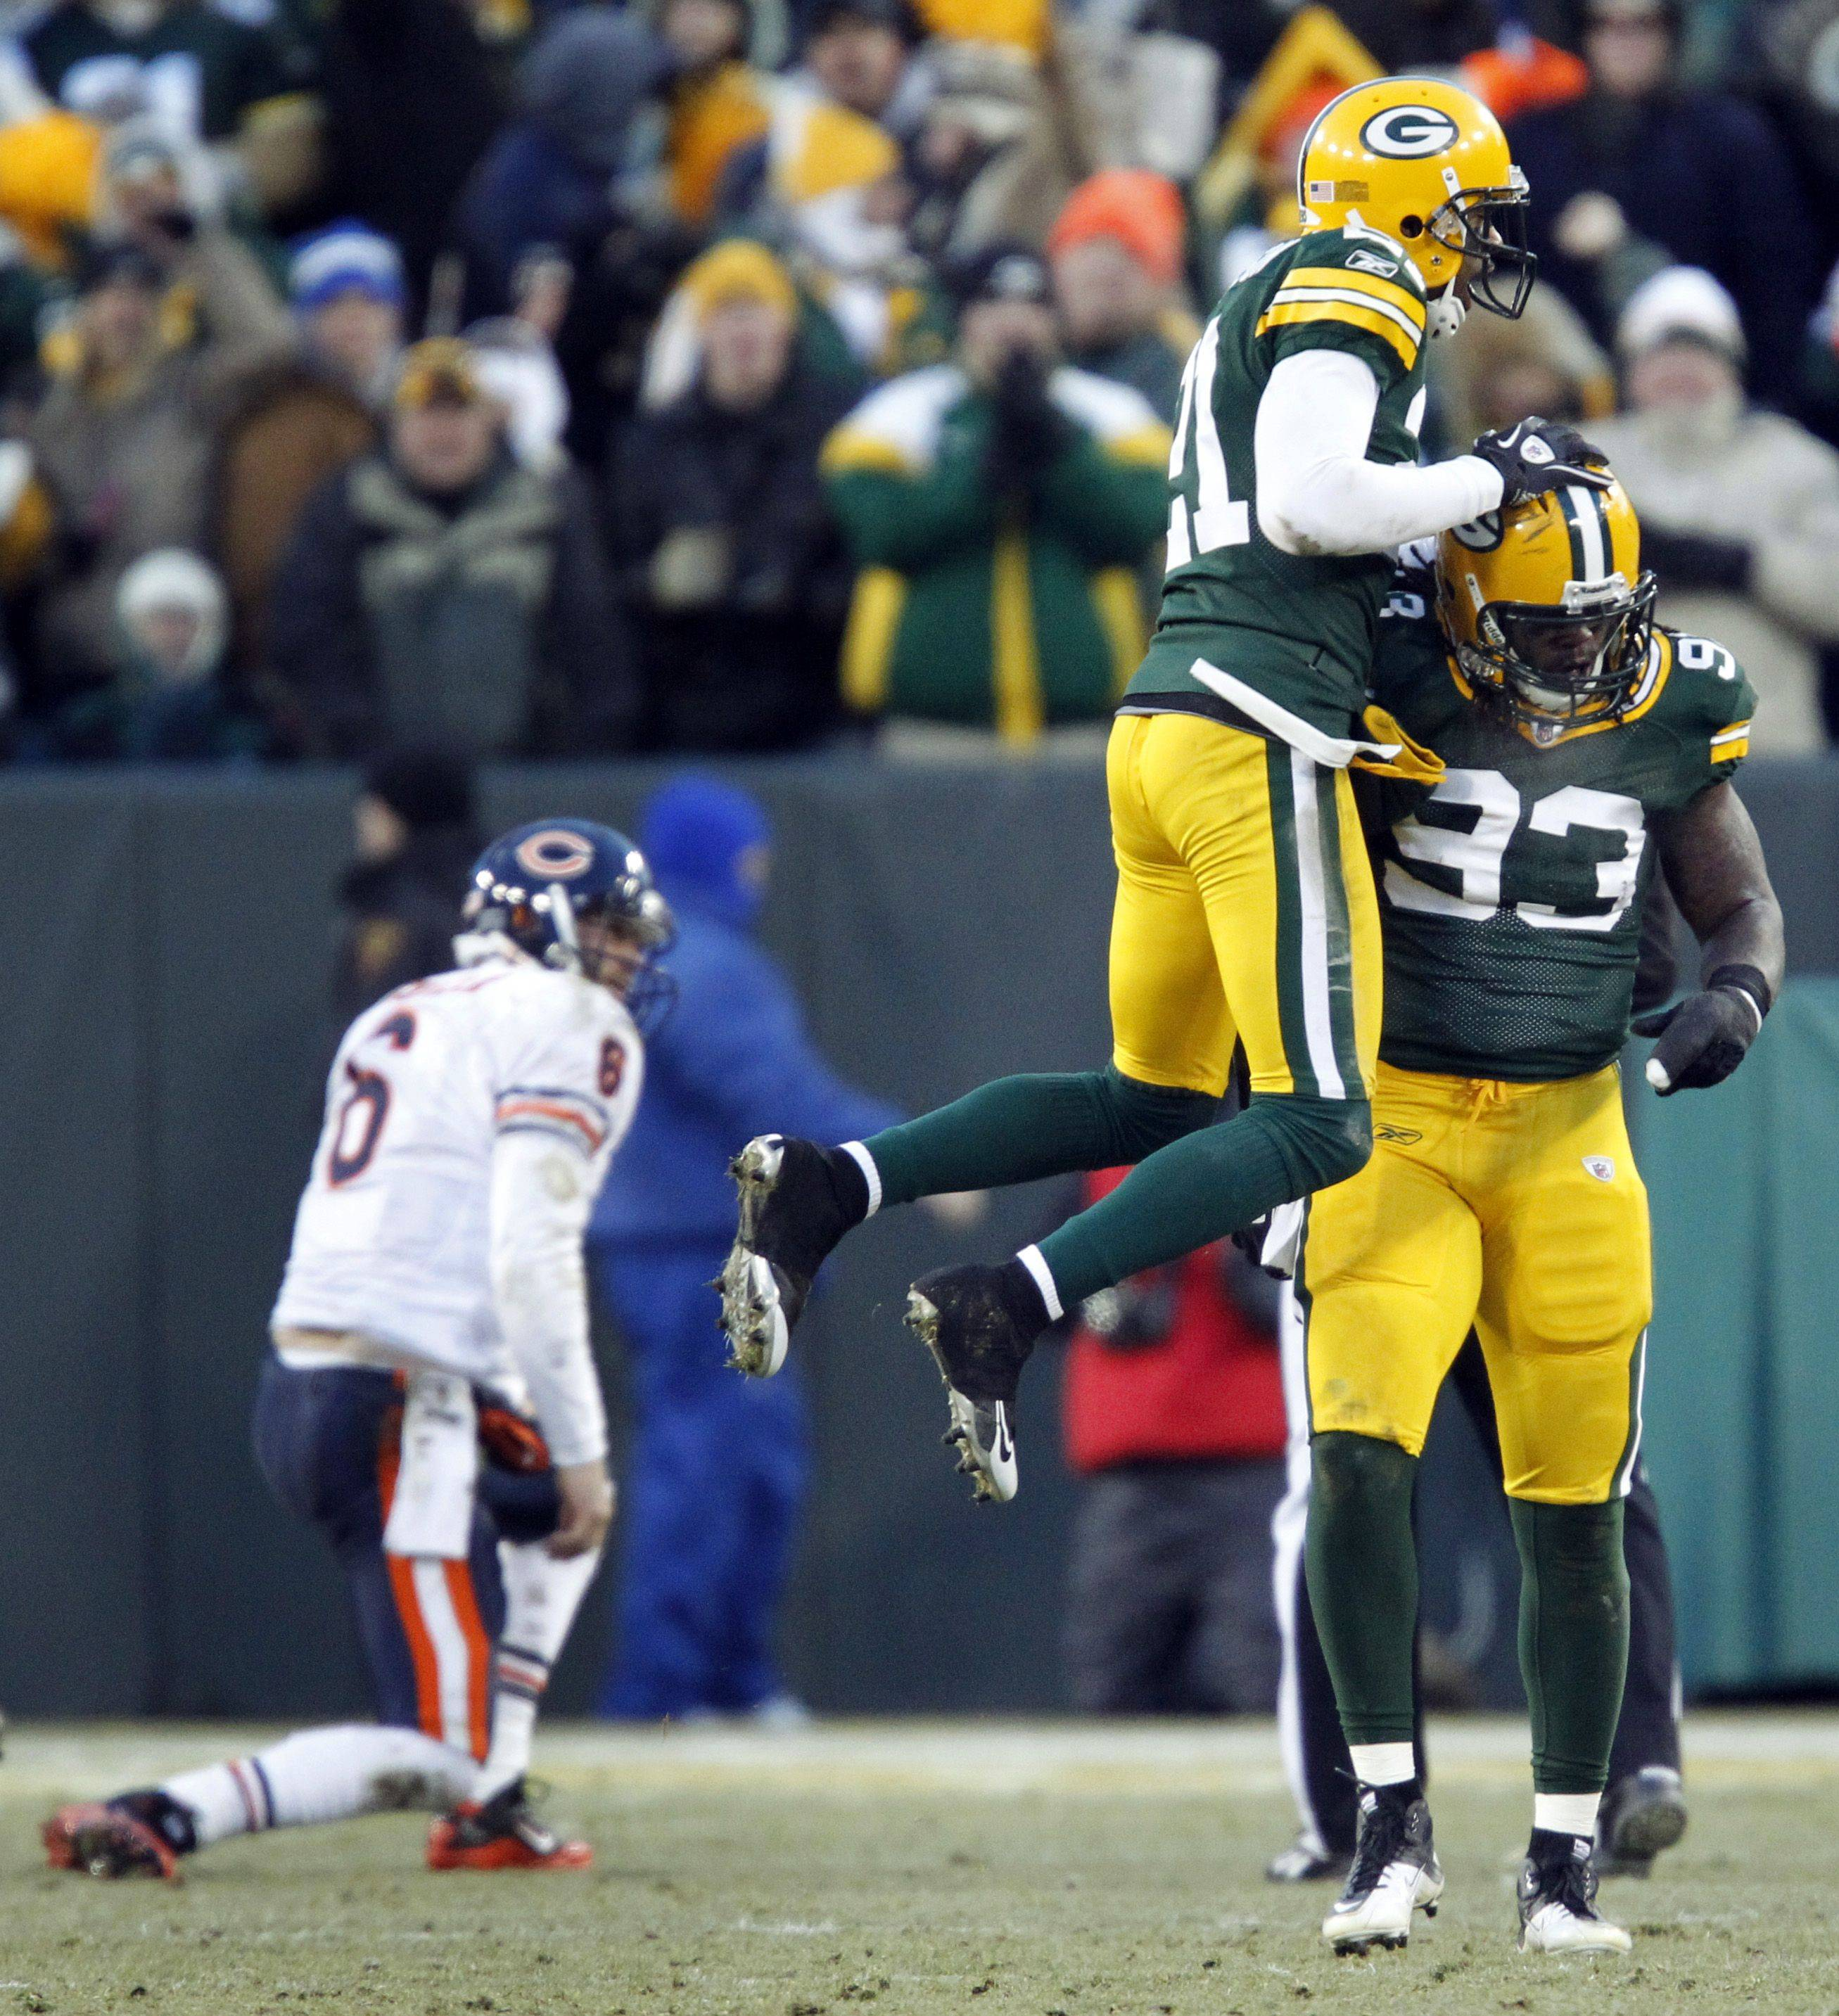 Green Bay Packers' Erik Walden is congratulated by Charles Woodson after Walden sacked Chicago Bears quarterback Jay Cutler during the first half.